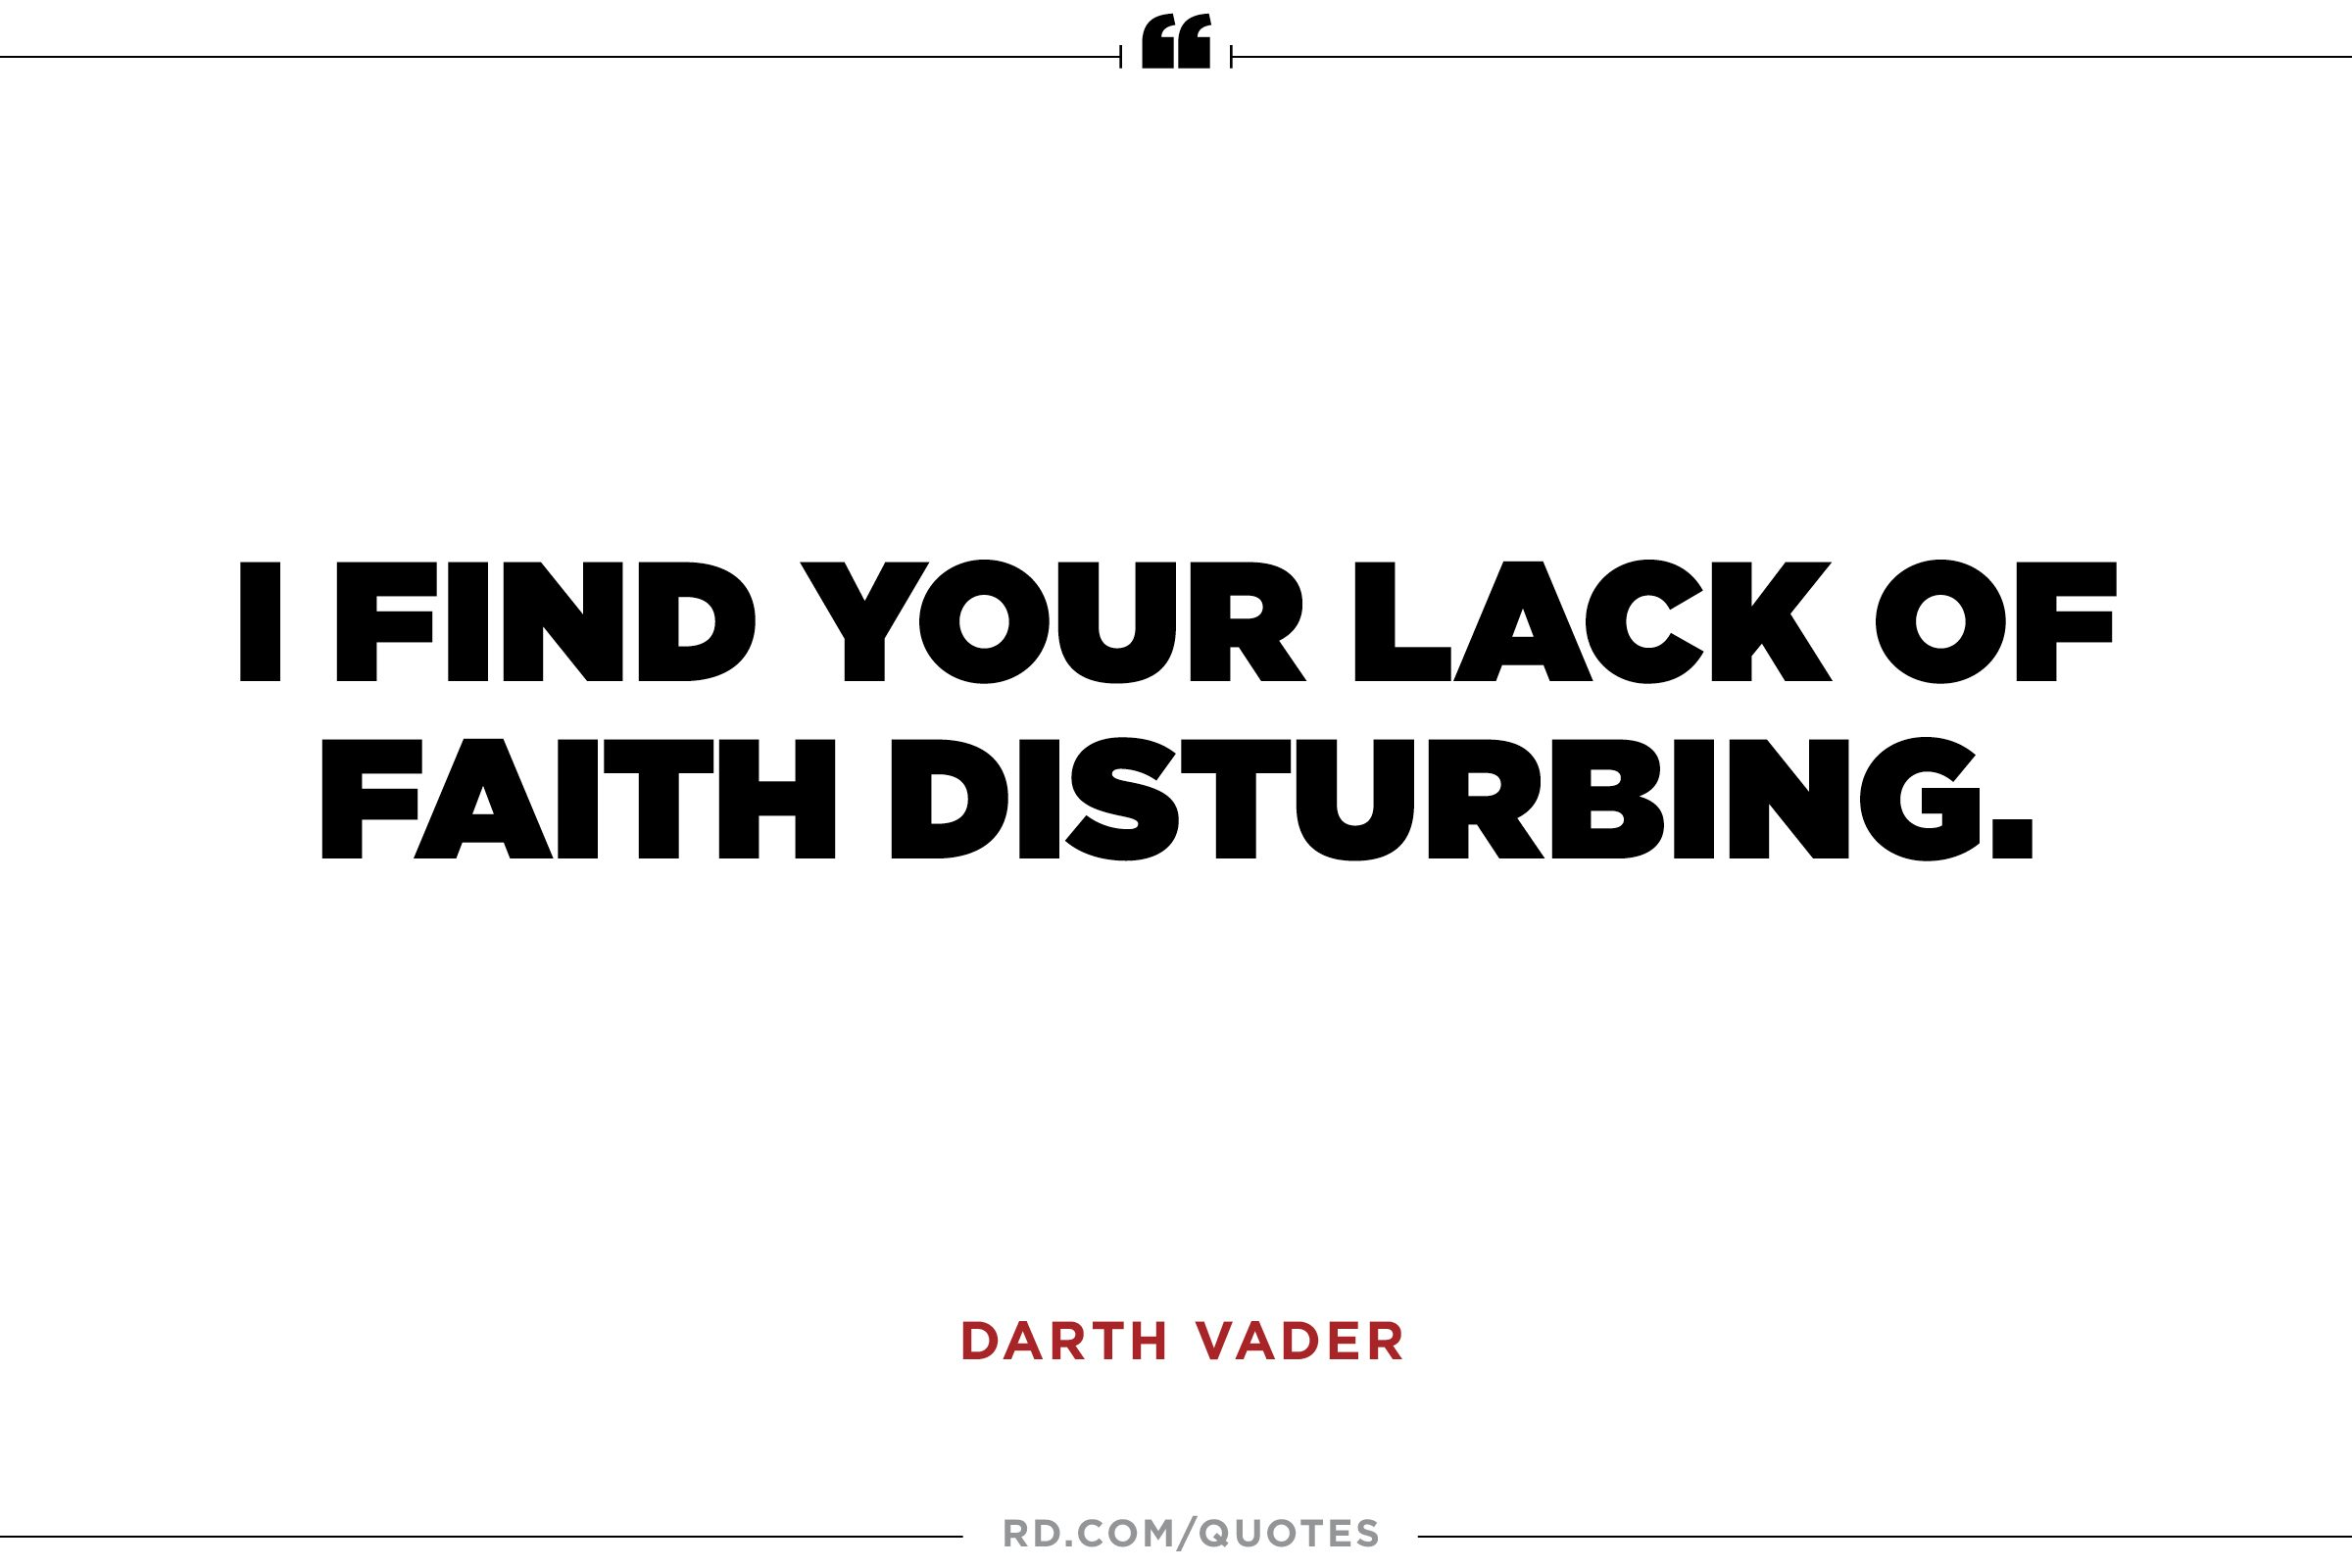 10 star wars quotes to live by reader 39 s digest